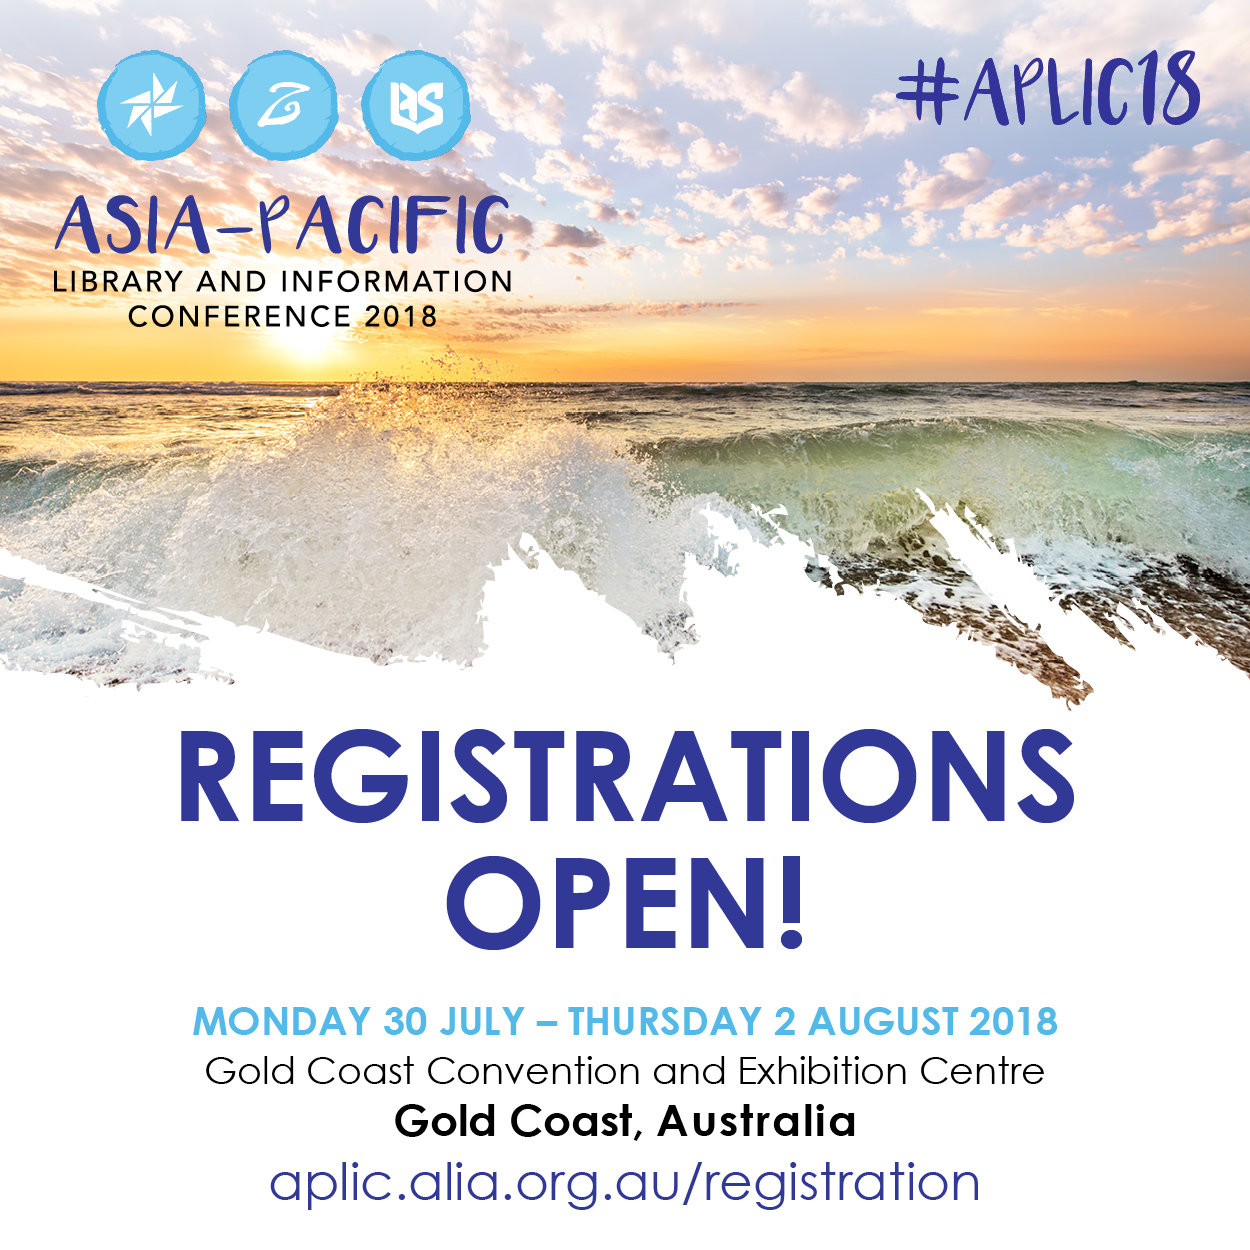 Asia-Pacific Library and Information Conference 2018 is Open For Registration